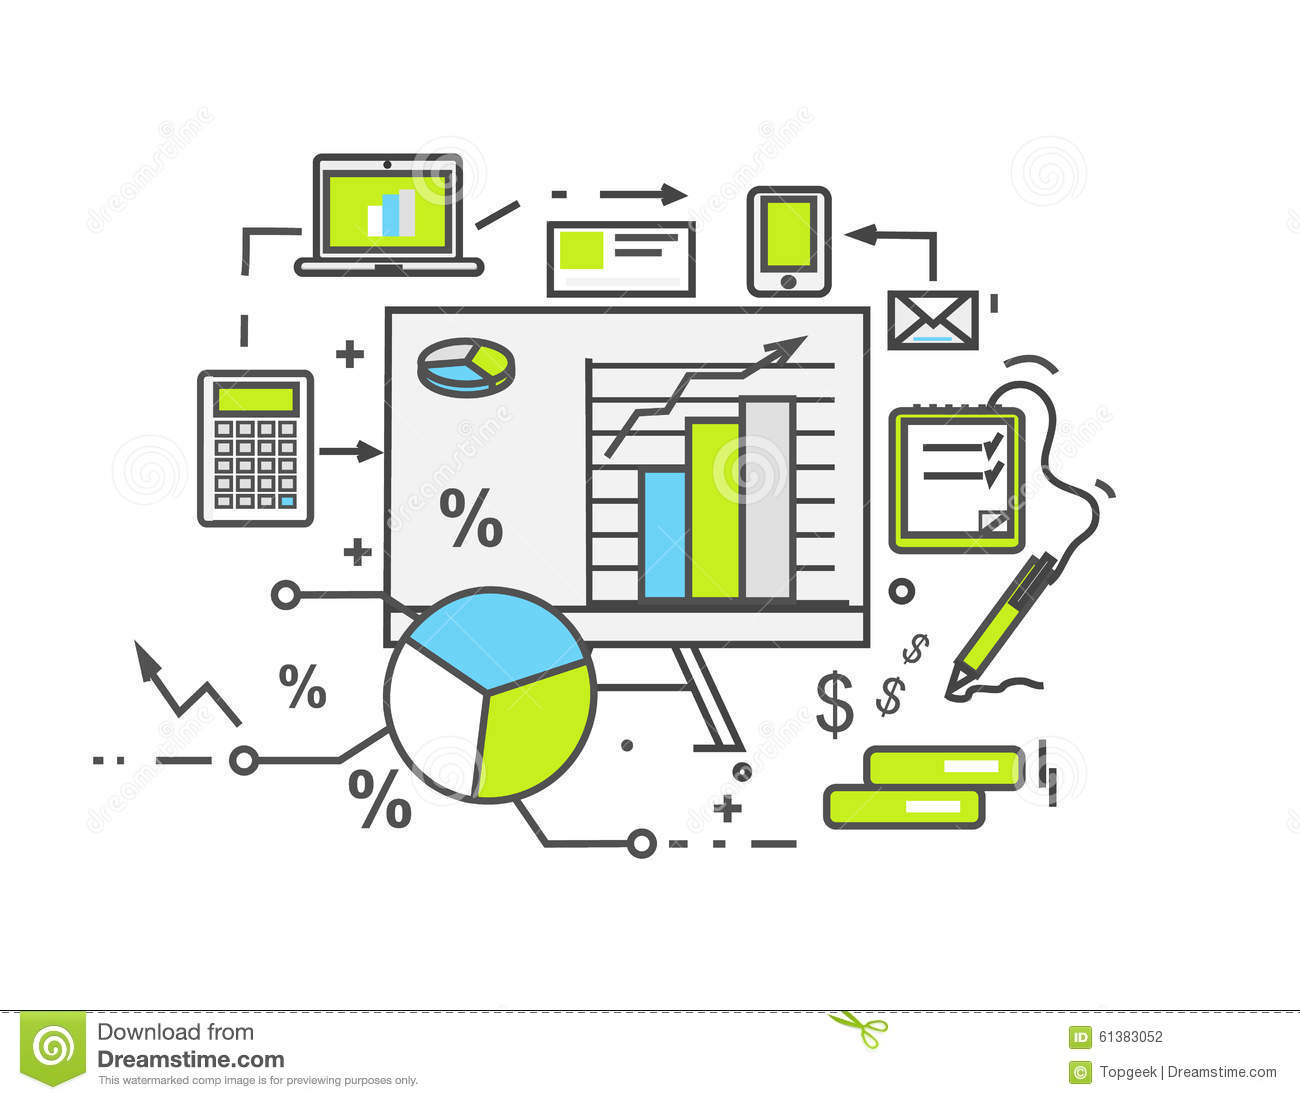 thomas money service business analysis Follow the stock market today on thestreet get business news that moves markets, award-winning stock analysis, market data and stock trading ideas.